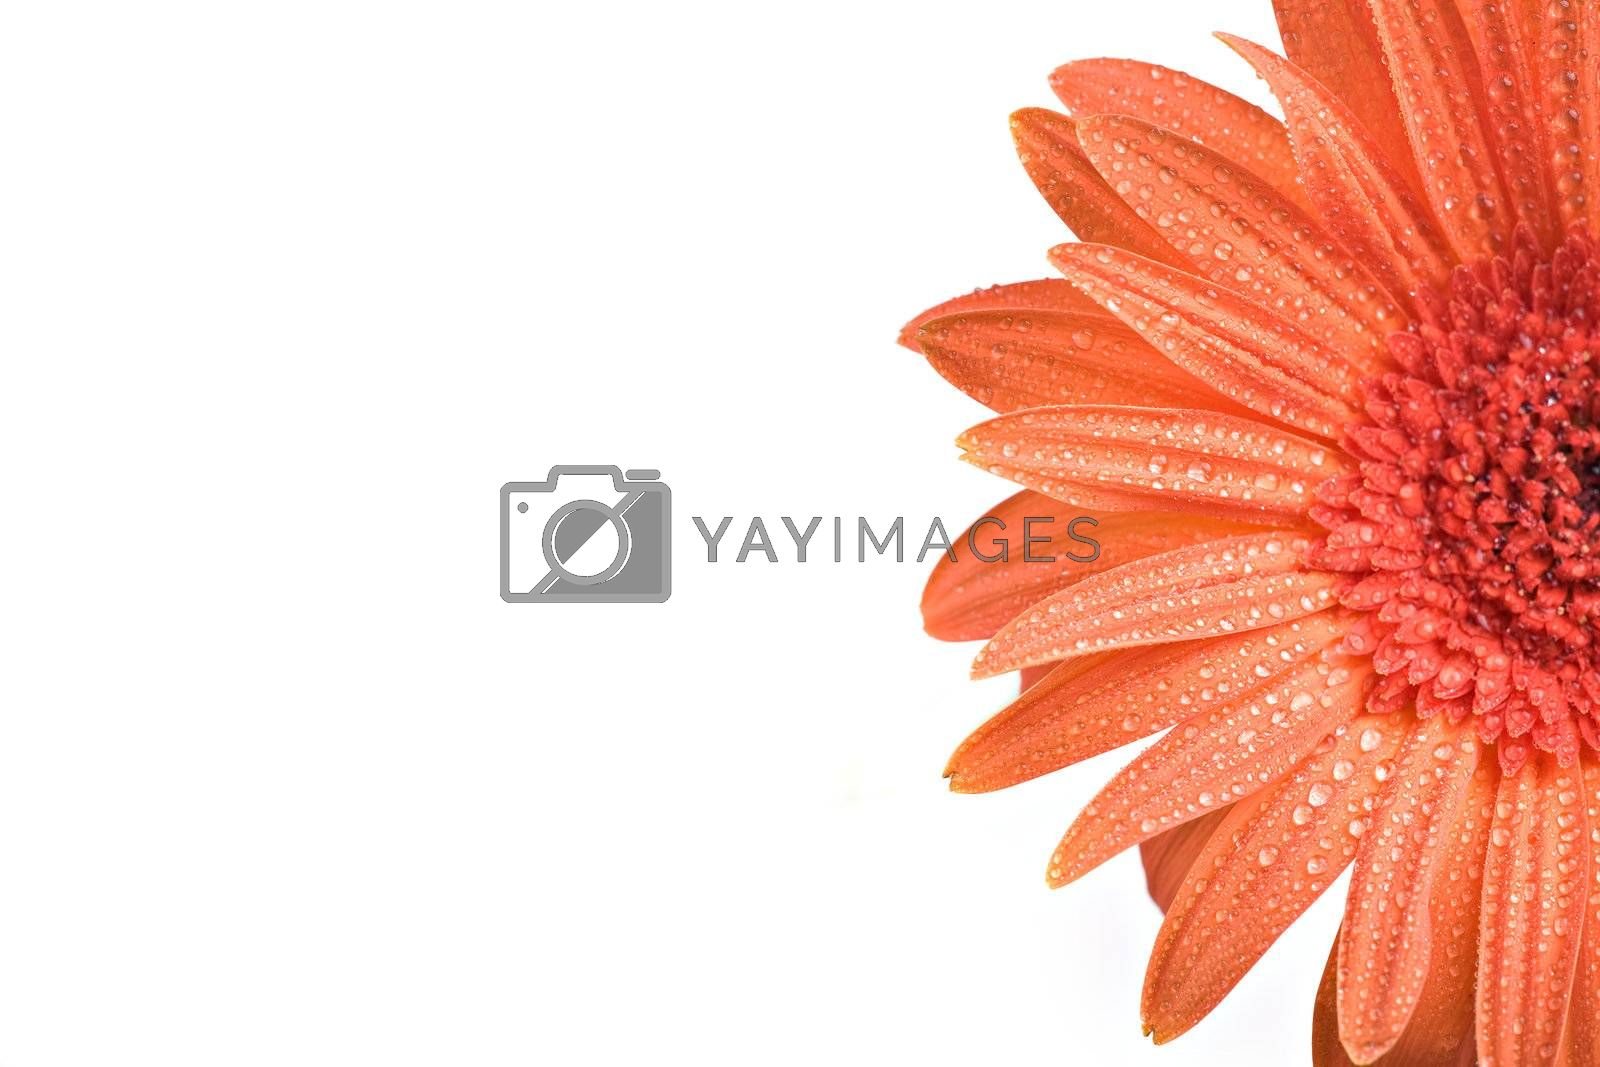 Extreme close-up of a gerber daisy with water drops isolated on white background.